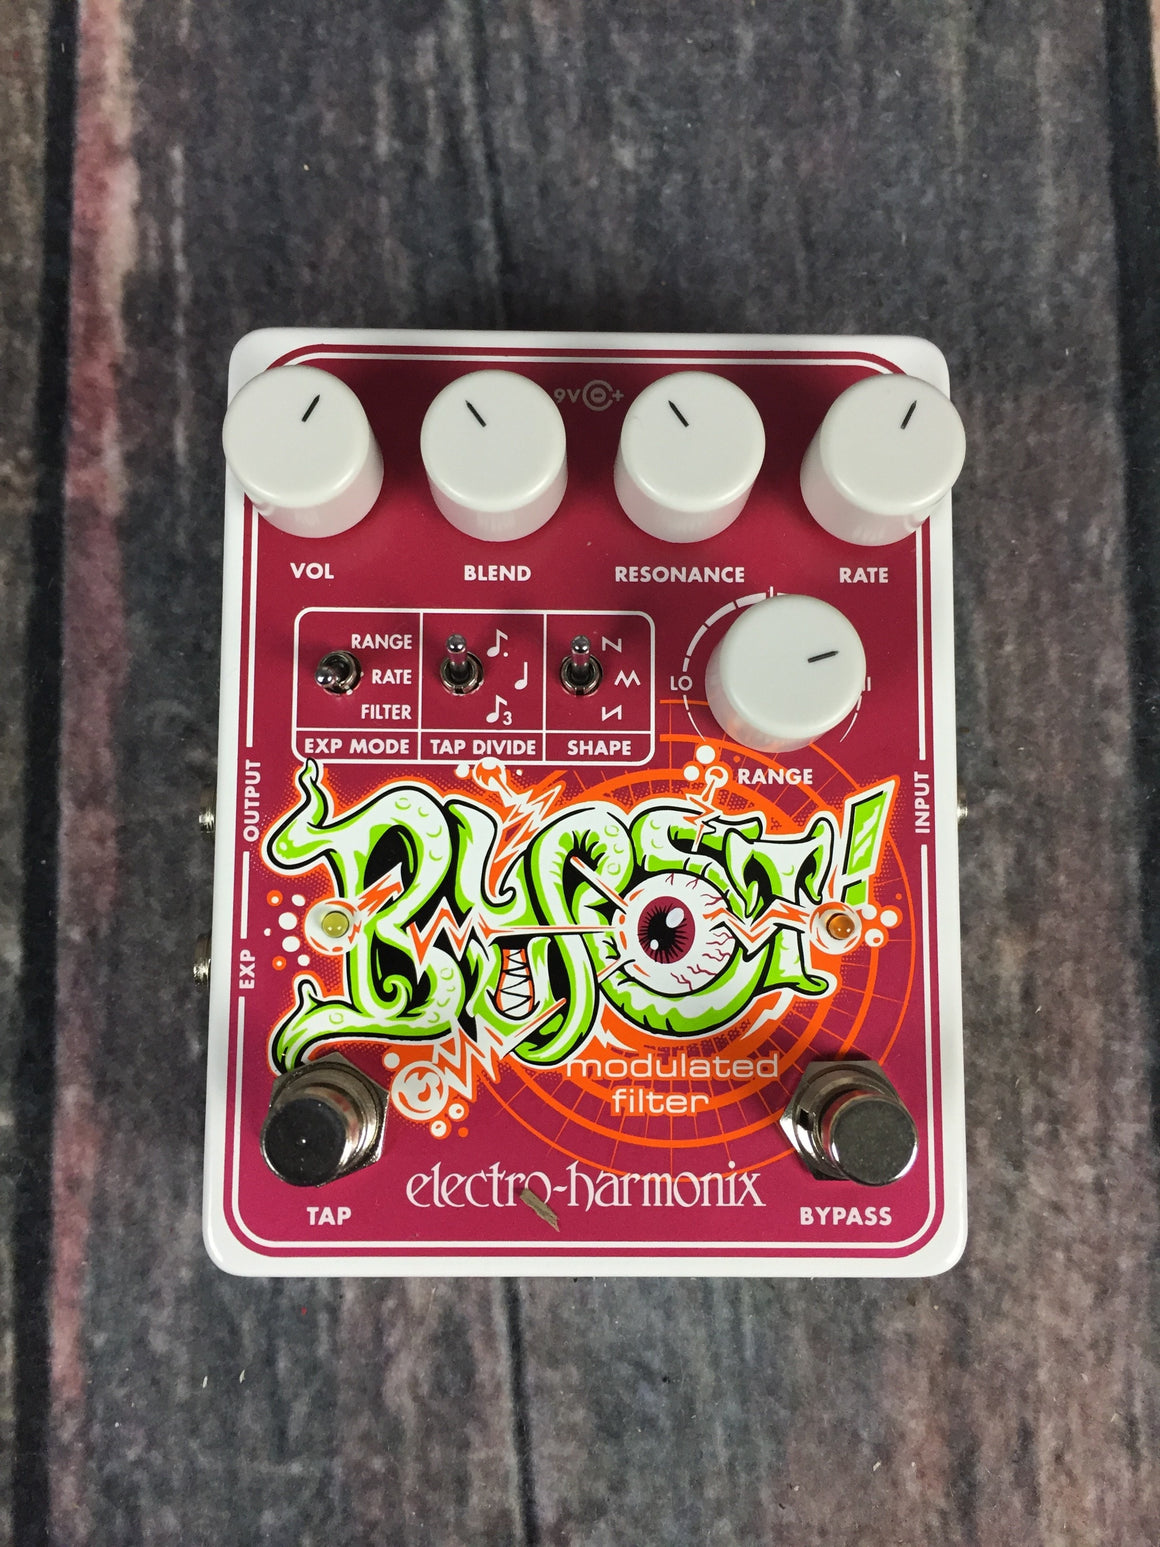 electro-harmonix pedal Electro-Harmonix Blurst Modulated Filter